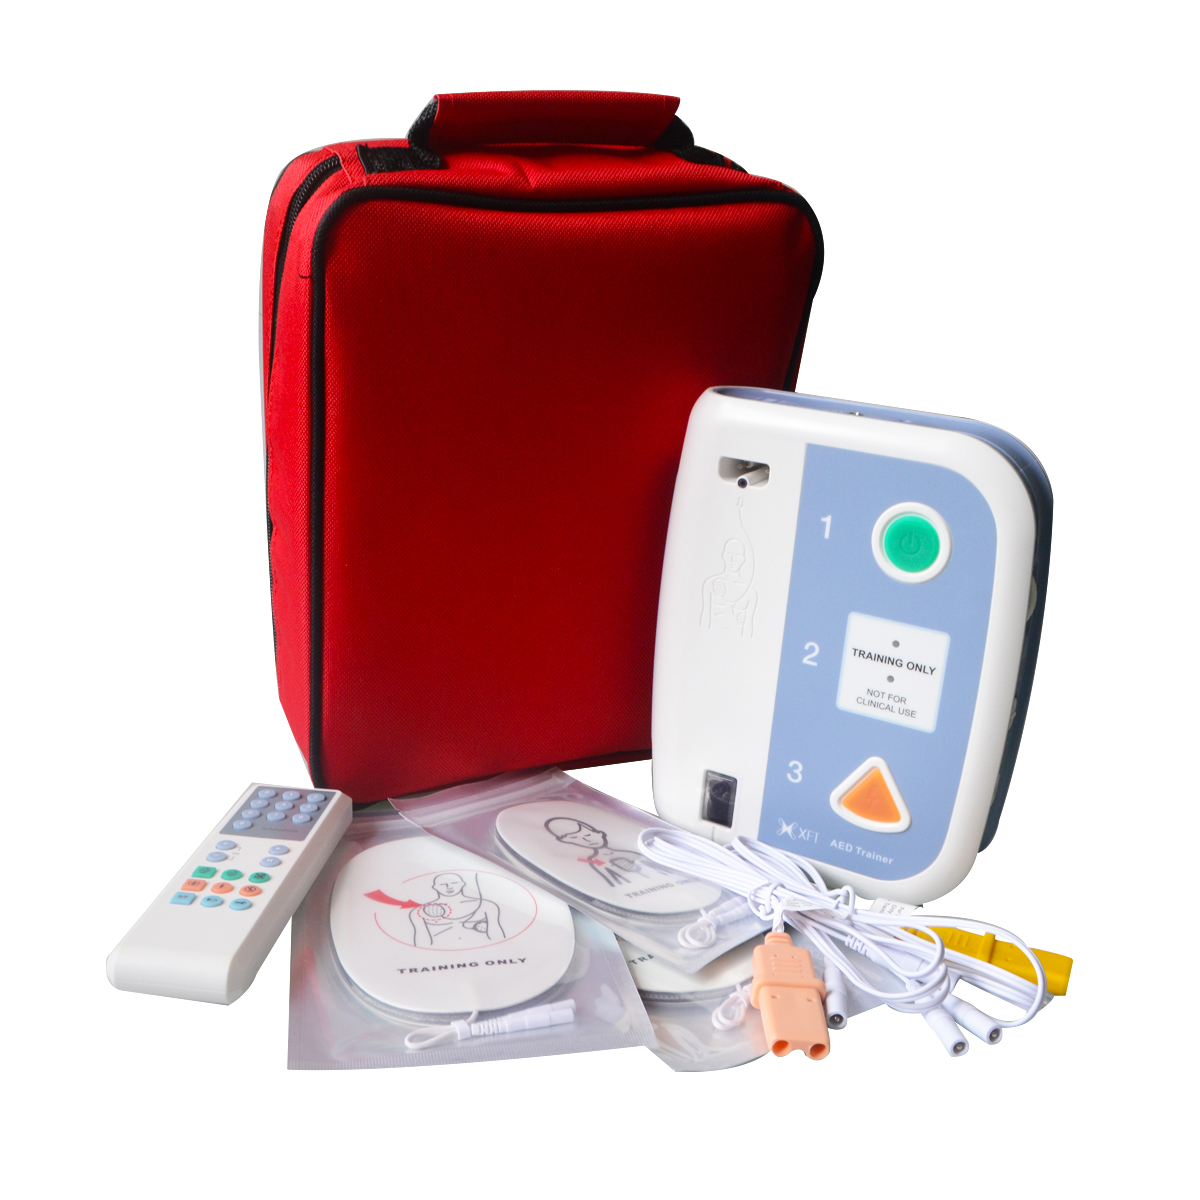 XFT 120C First Aid Device AED Trainer Automated External Defibrillator Emergency CPR Training Teaching Several Language